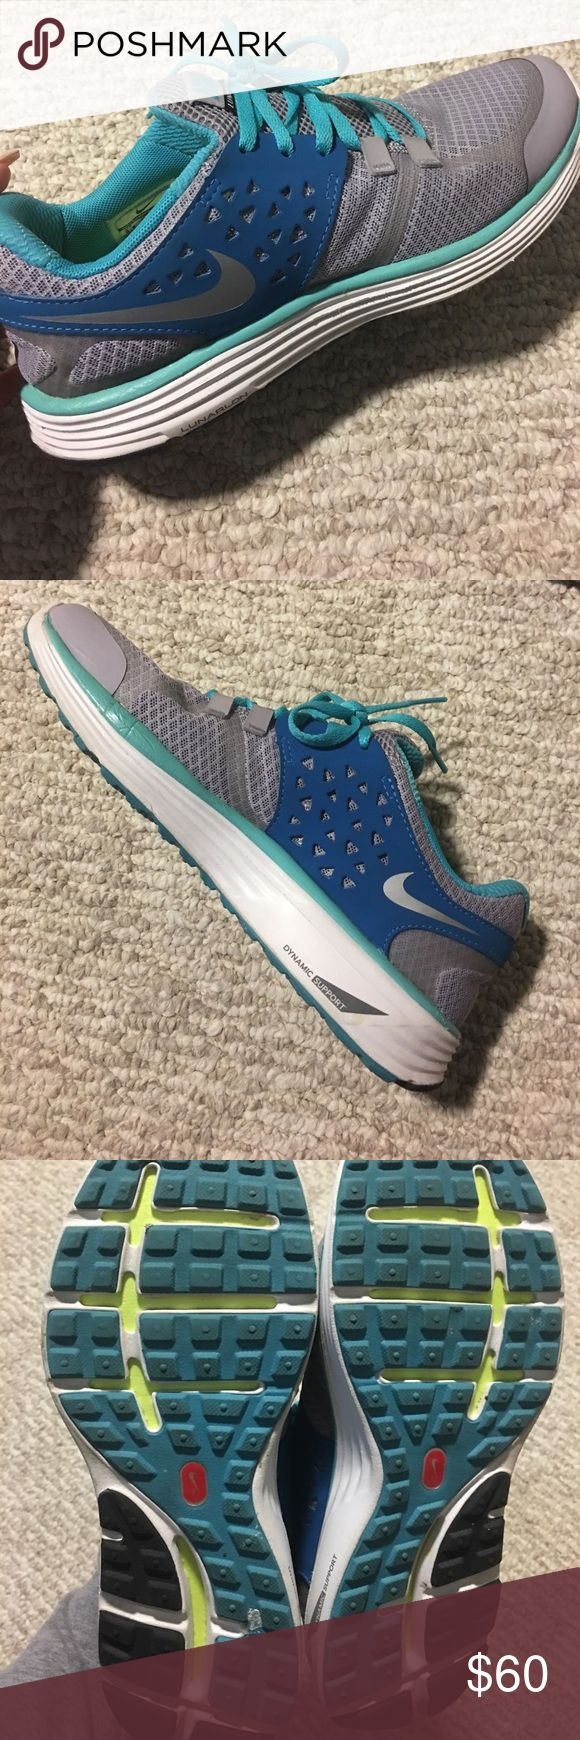 Nike Lunar Running Shoes Nike lunarlon running shoes. Been worn 1 time. Excellent condition, like brand new💙✨ Nike Shoes Sneakers